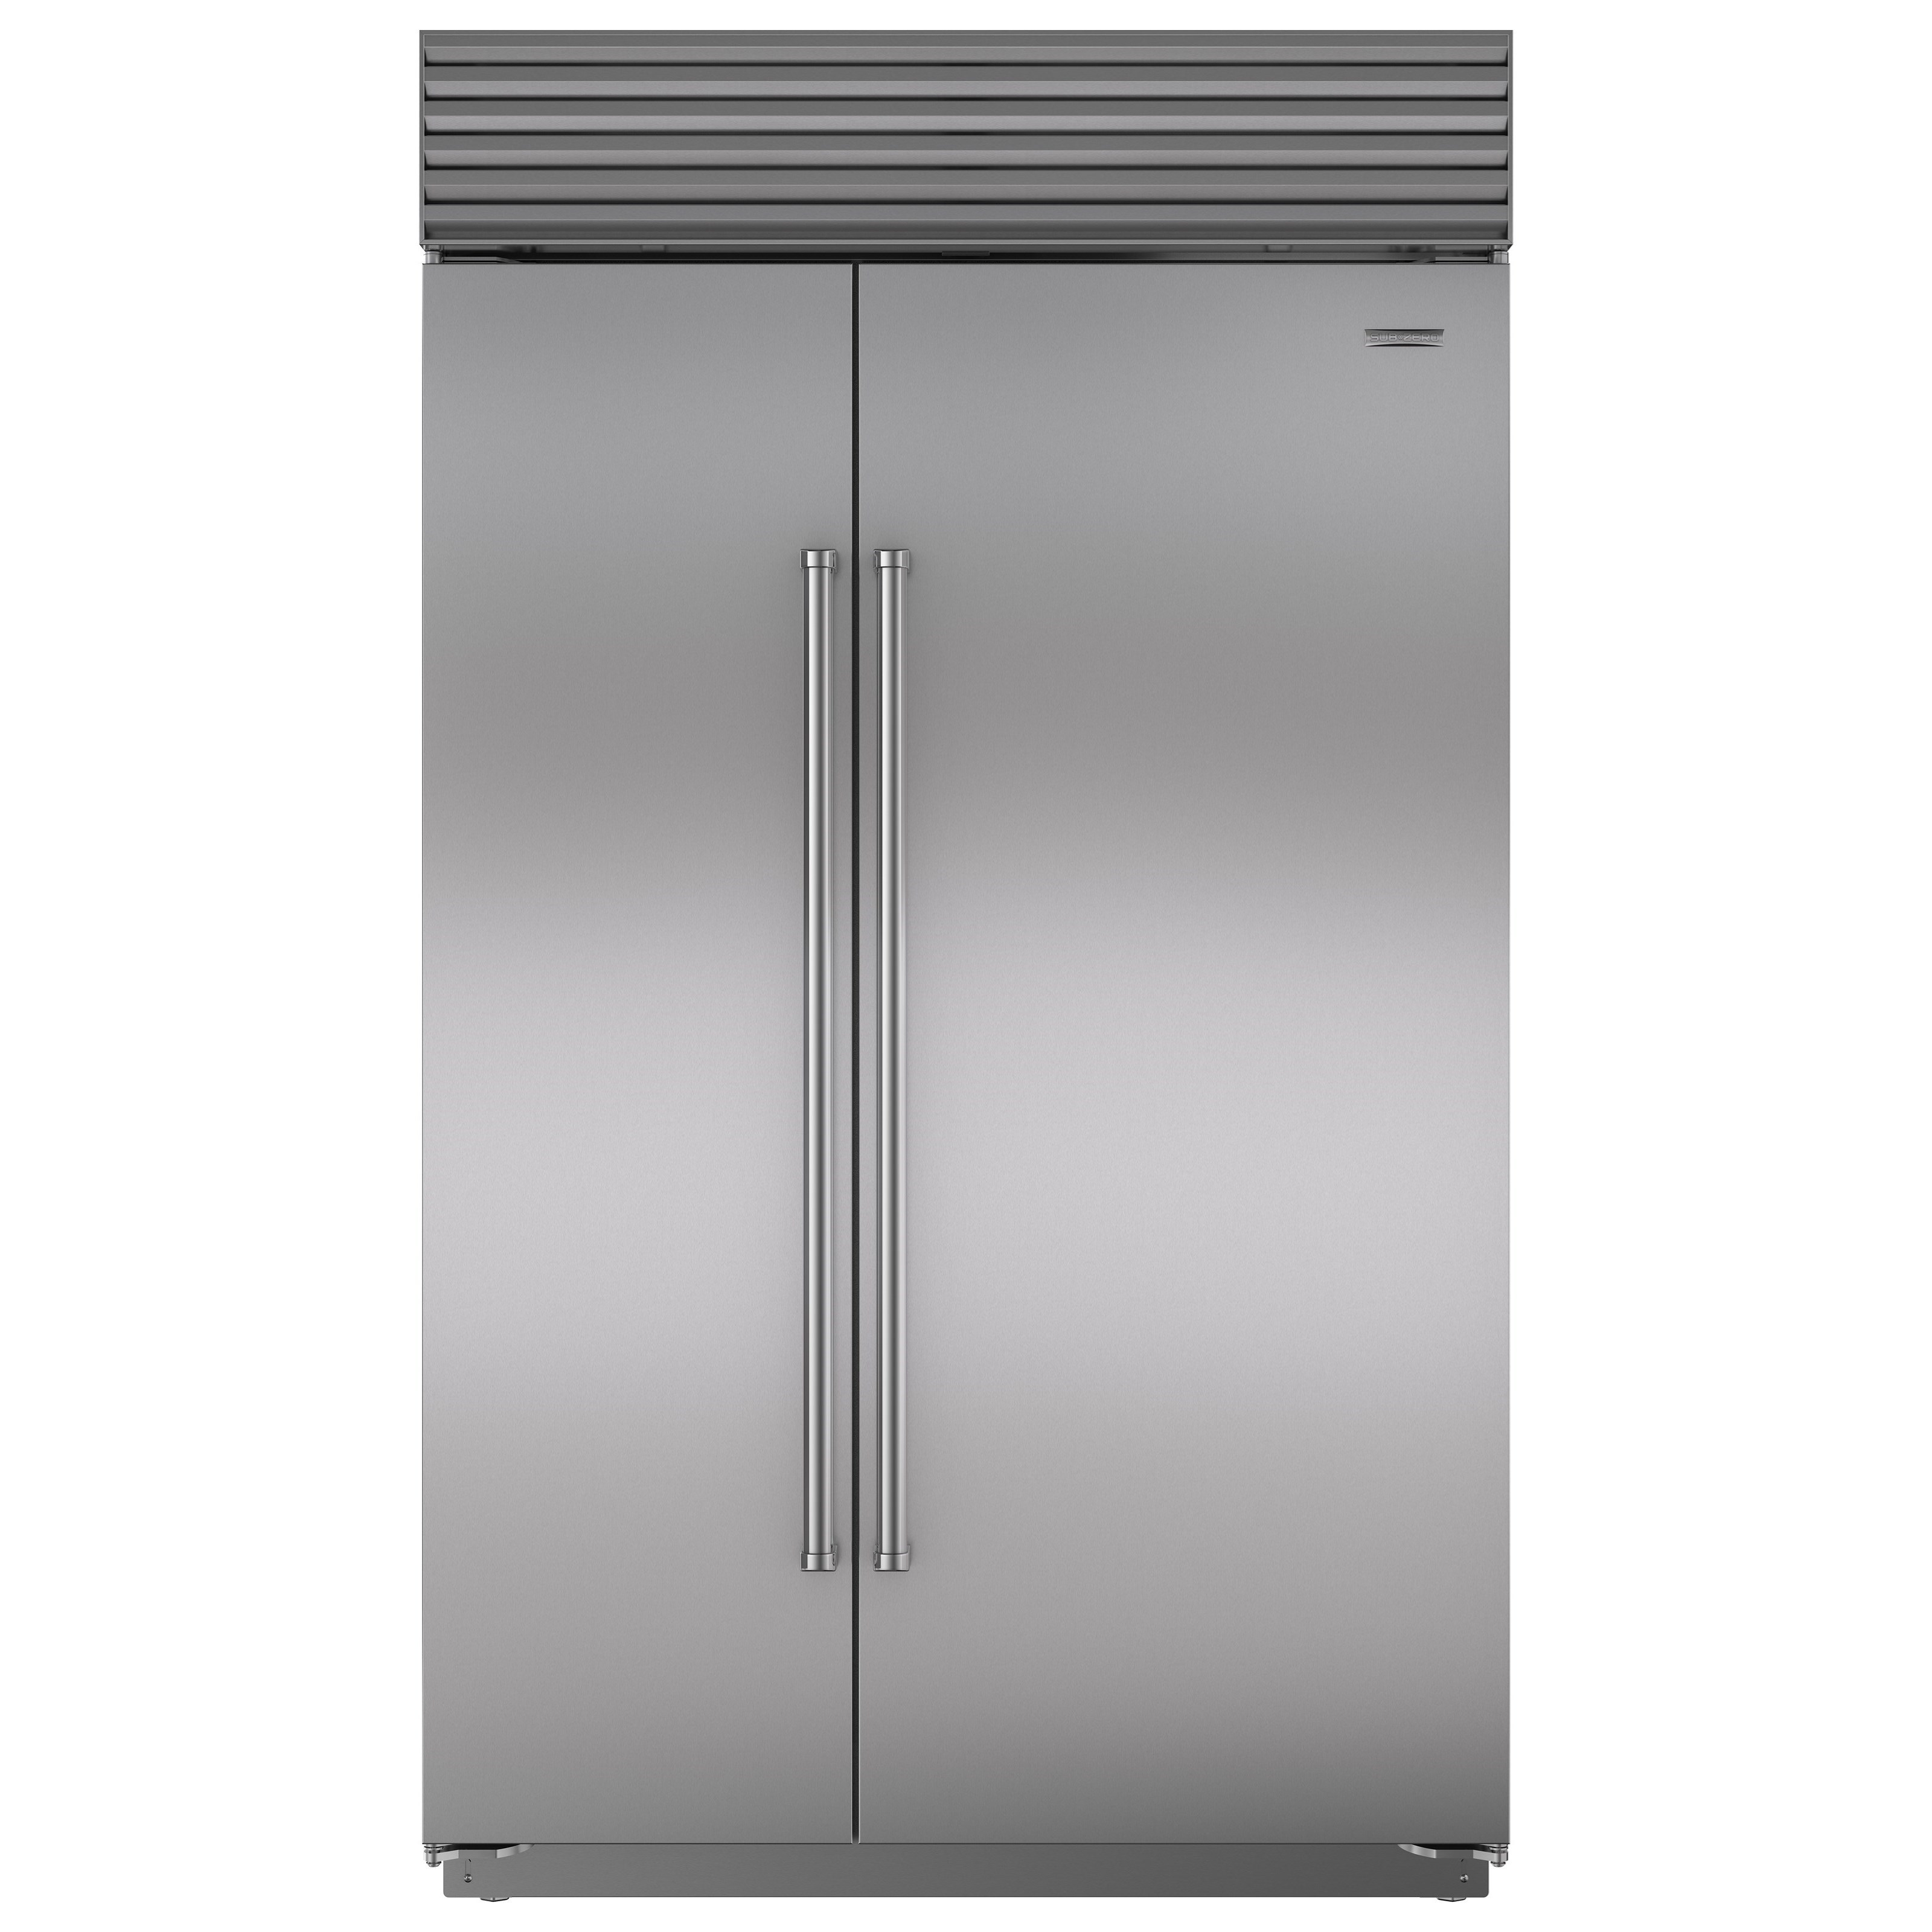 Built-In Refrigerators 28.2 Cu. Ft. Built-In Refrigerator by Sub-Zero at Furniture and ApplianceMart